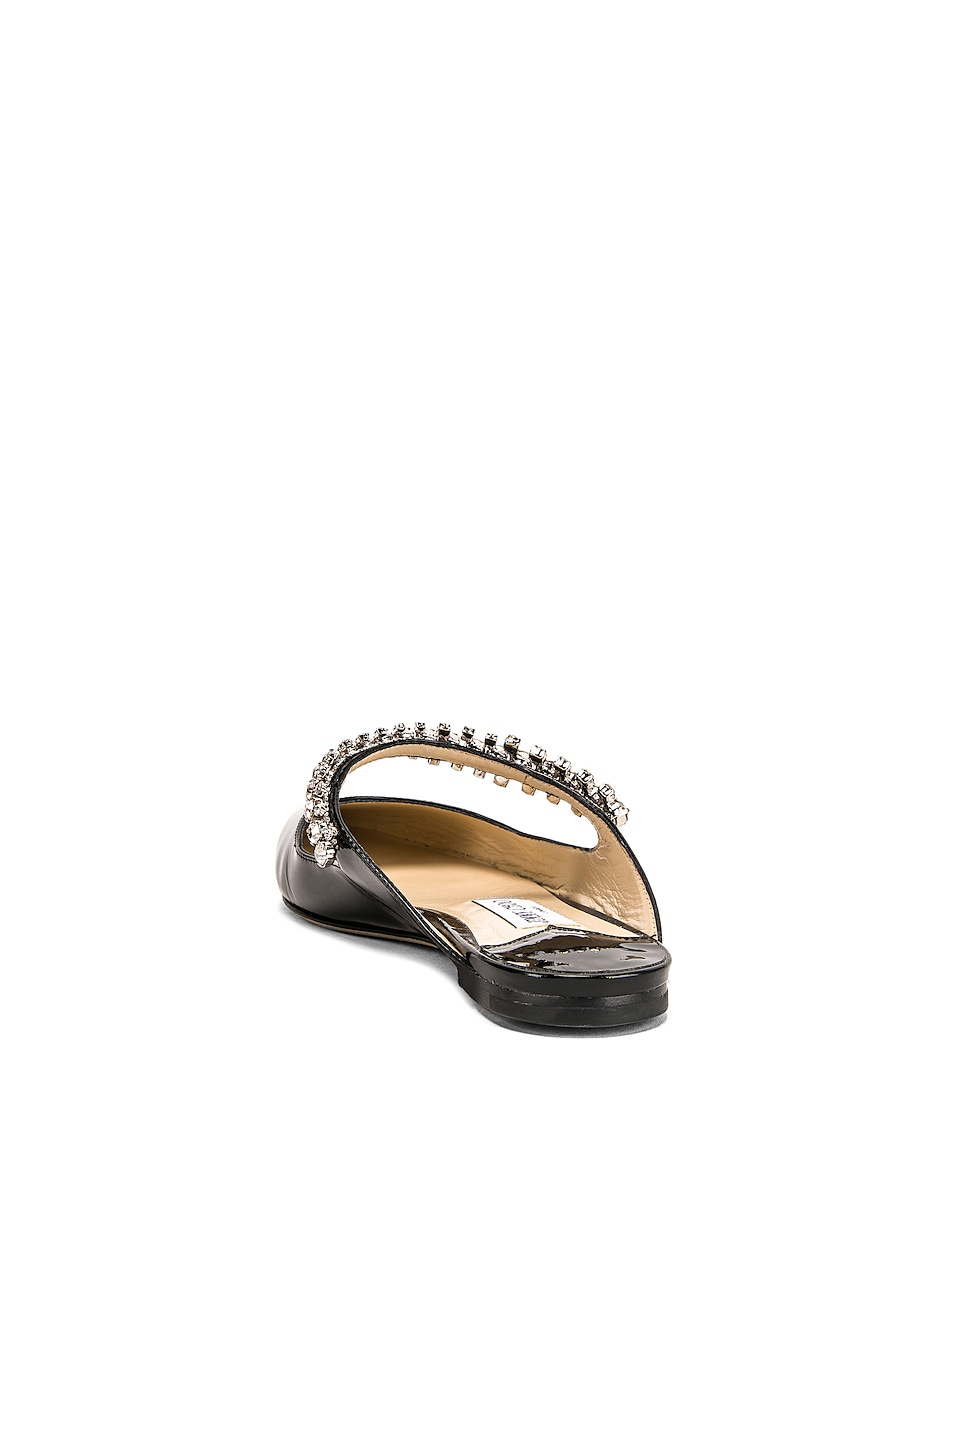 Image 3 of Jimmy Choo Patent Leather Bing Flat in Black